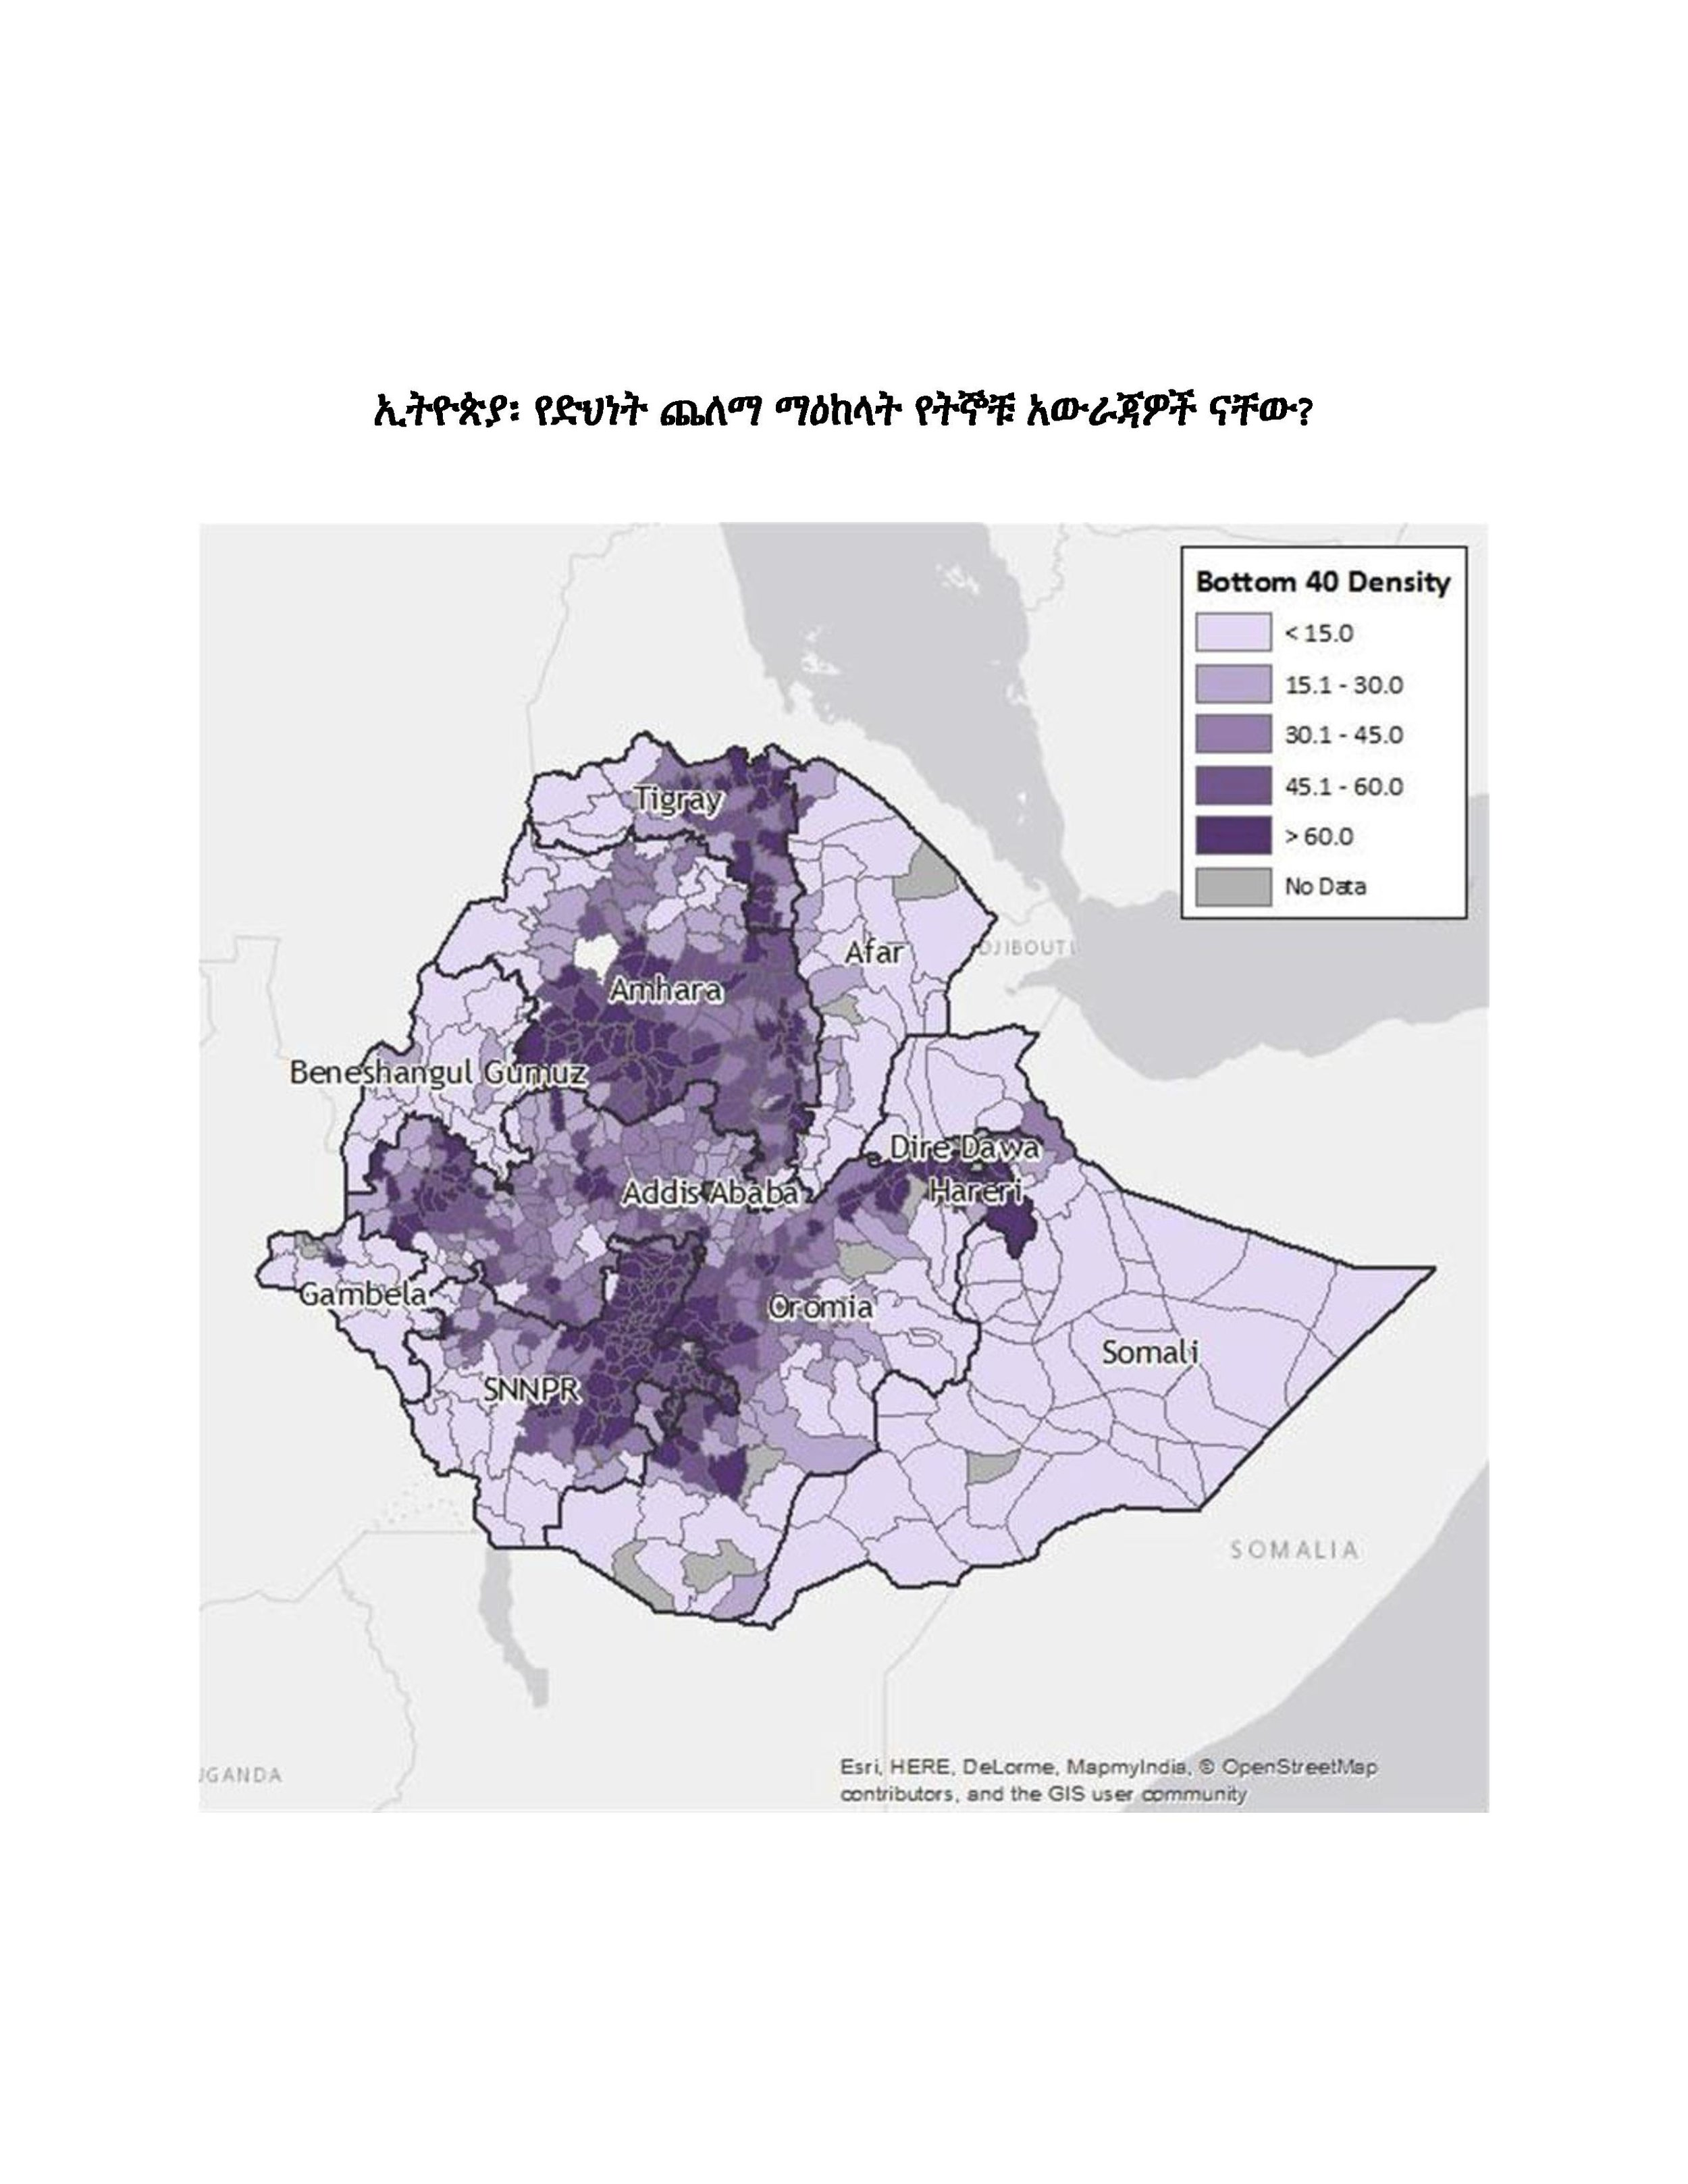 Density of bottom 40% of income    ከደገኛው፣ይሻል ቆለኛው።